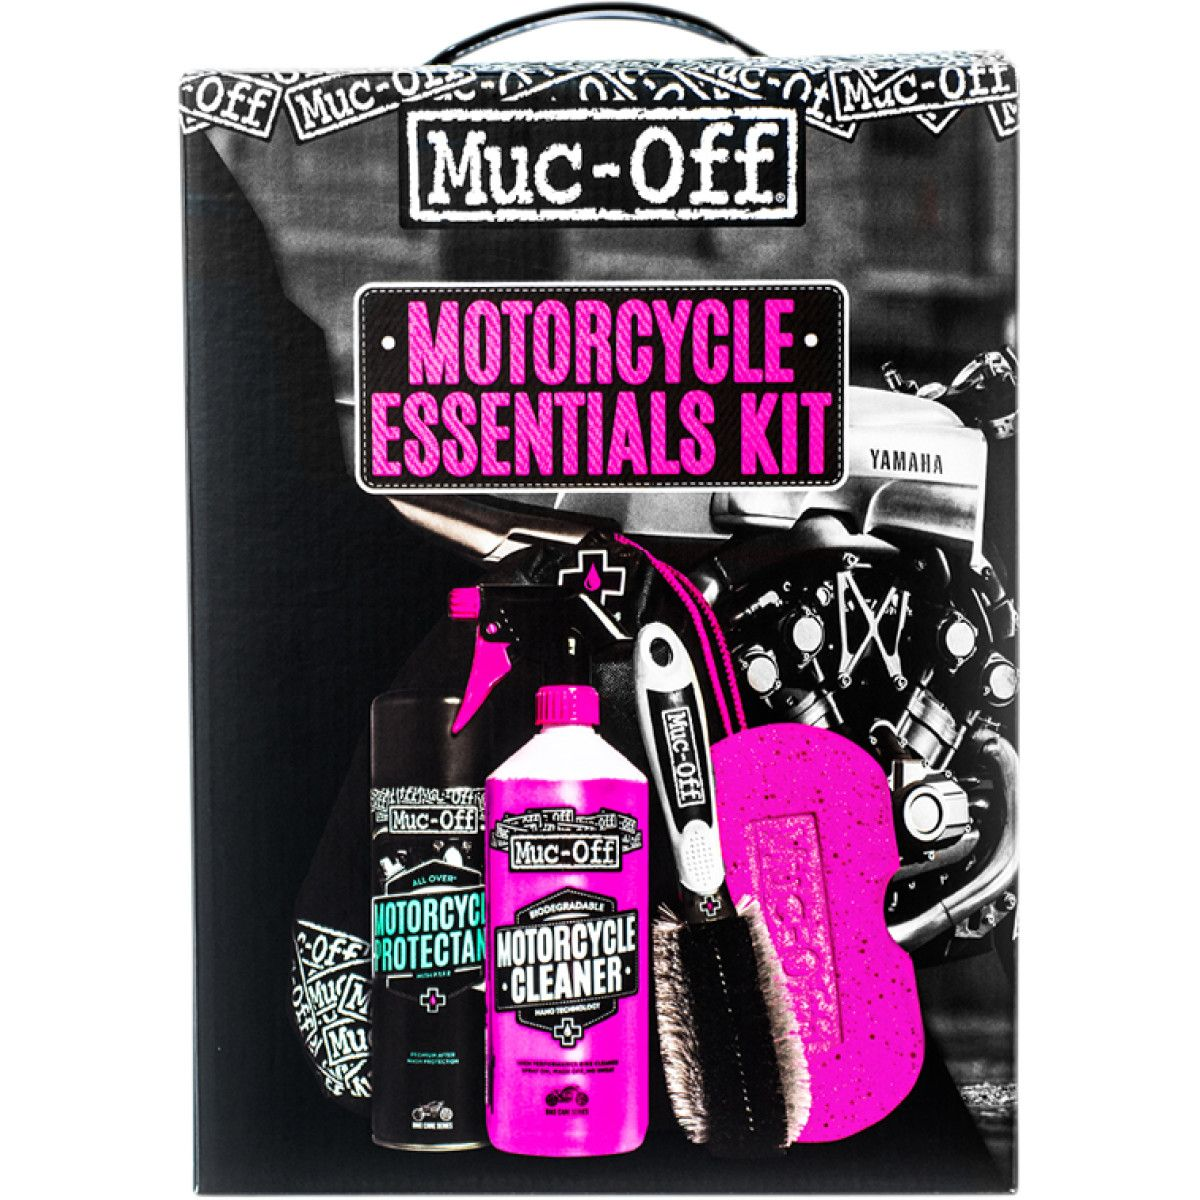 Muc-Off Motorcycle Bike Essentials Cleaning Kit